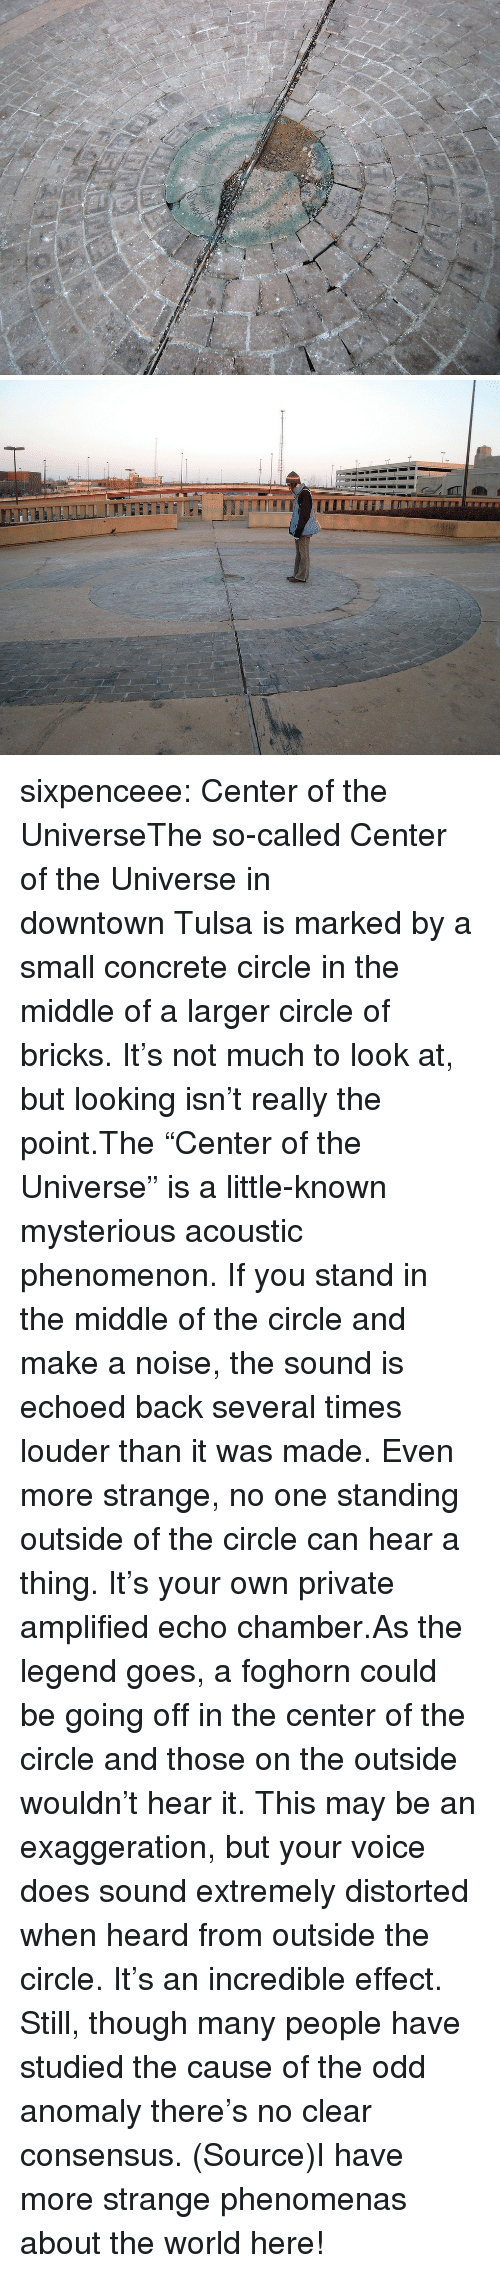 """distorted: sixpenceee:  Center of the UniverseThe so-called Center of the Universe in downtownTulsais marked by a small concrete circle in the middle of a larger circle of bricks. It's not much to look at, but looking isn't really the point.The """"Center of the Universe"""" is a little-known mysterious acoustic phenomenon. If you stand in the middle of the circle and make a noise, the sound is echoed back several times louder than it was made. Even more strange, no one standing outside of the circle can hear a thing. It's your own private amplified echo chamber.As the legend goes, a foghorn could be going off in the center of the circle and those on the outside wouldn't hear it. This may be an exaggeration, but your voice does sound extremely distorted when heard from outside the circle. It's an incredible effect. Still, though many people have studied the cause of the odd anomaly there's no clear consensus. (Source)I have more strange phenomenas about the world here!"""